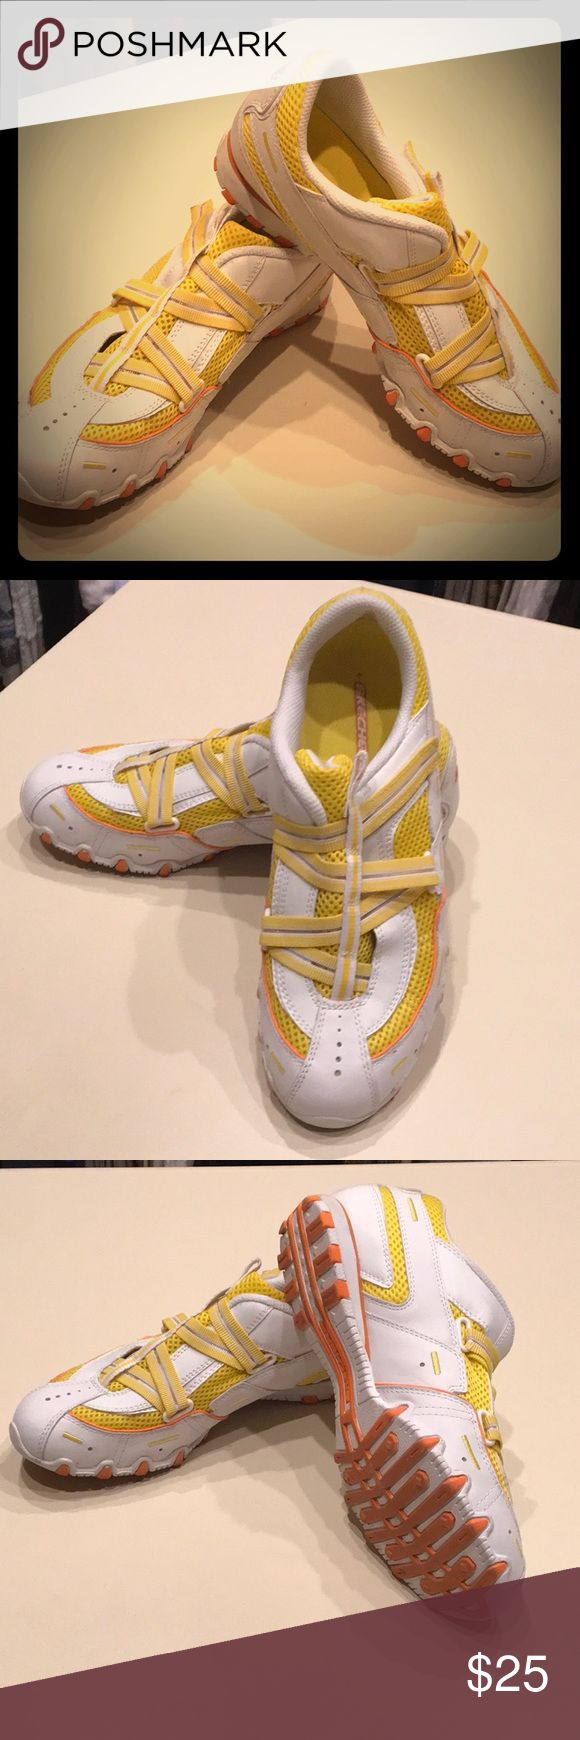 Sketchers Yellow white and orange Sketcher sneakers. Very good condition! SKETCHERS Shoes Sneakers